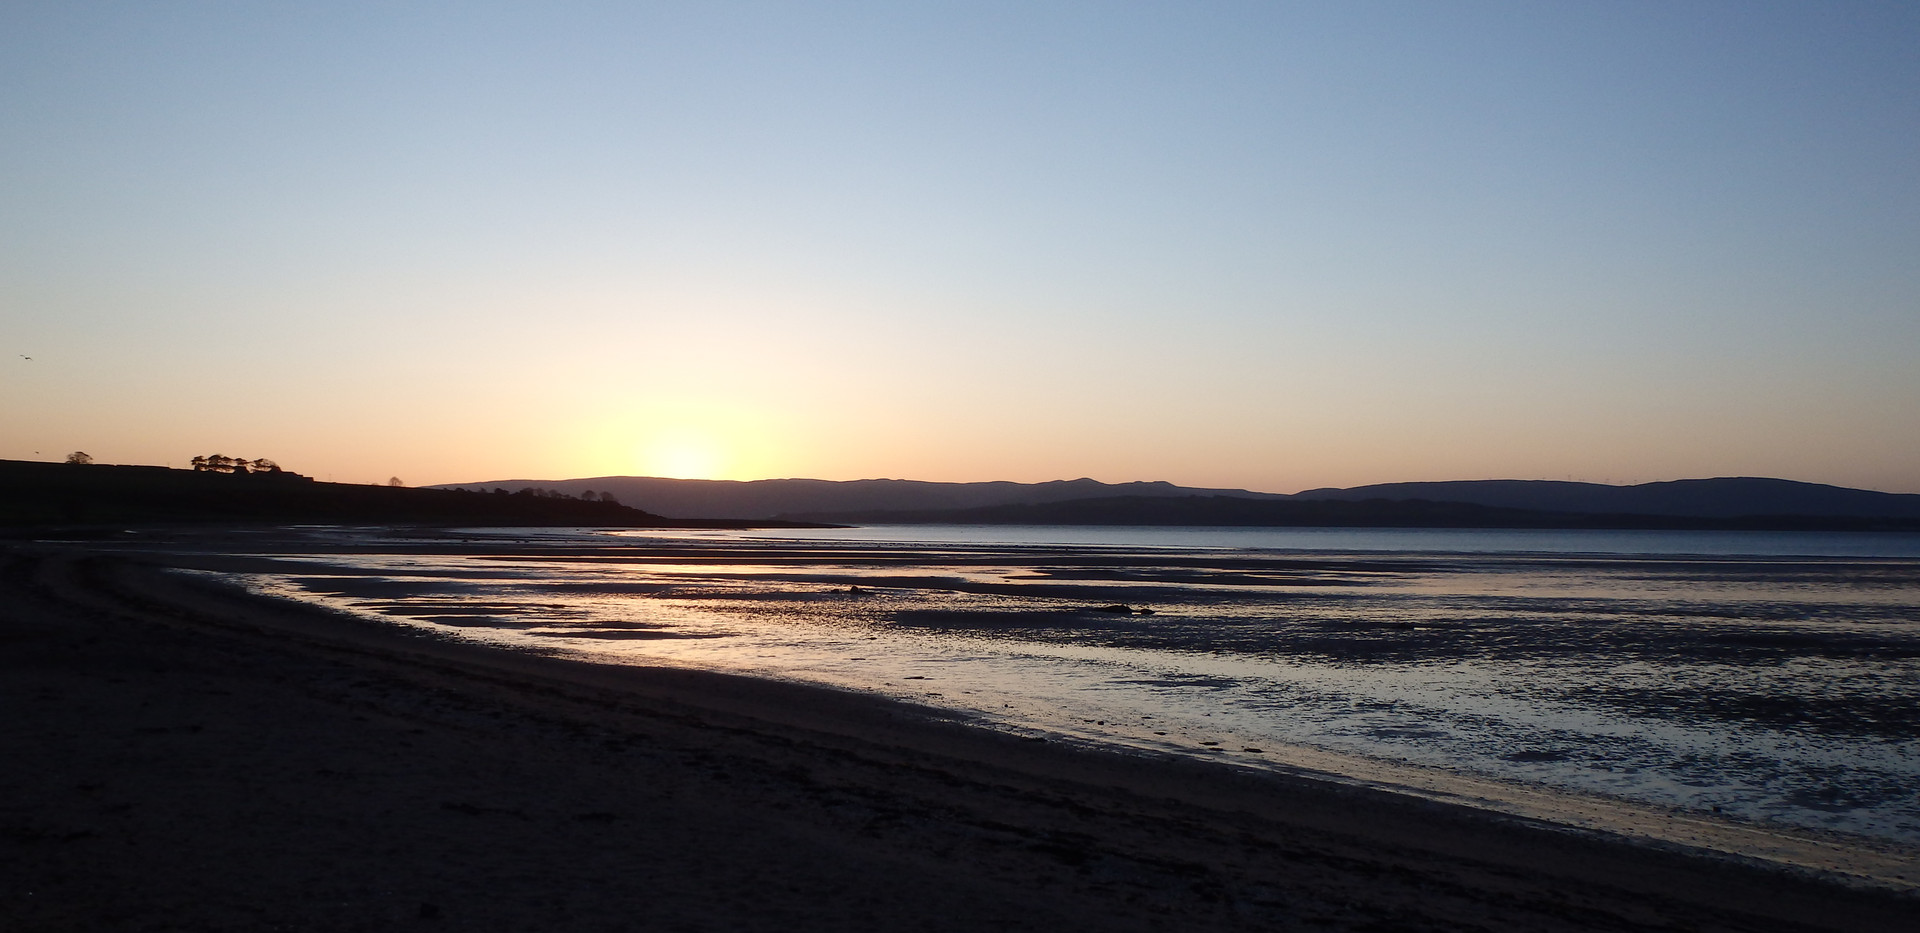 Sunrise over Kilchattan Bay.